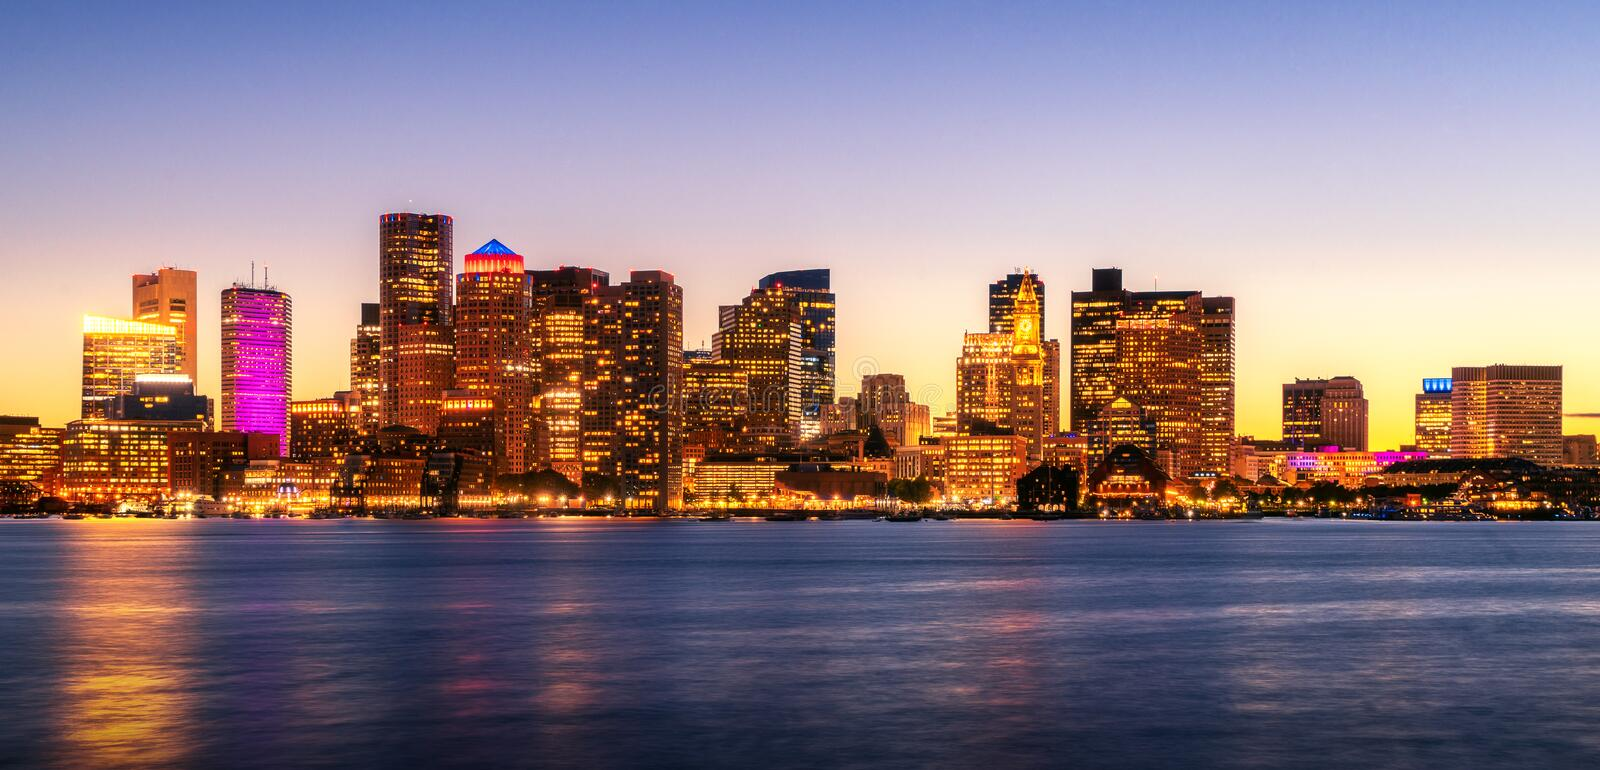 Night Cityscape photo for Boston city skyline with sunset in Boston harbor royalty free stock photos